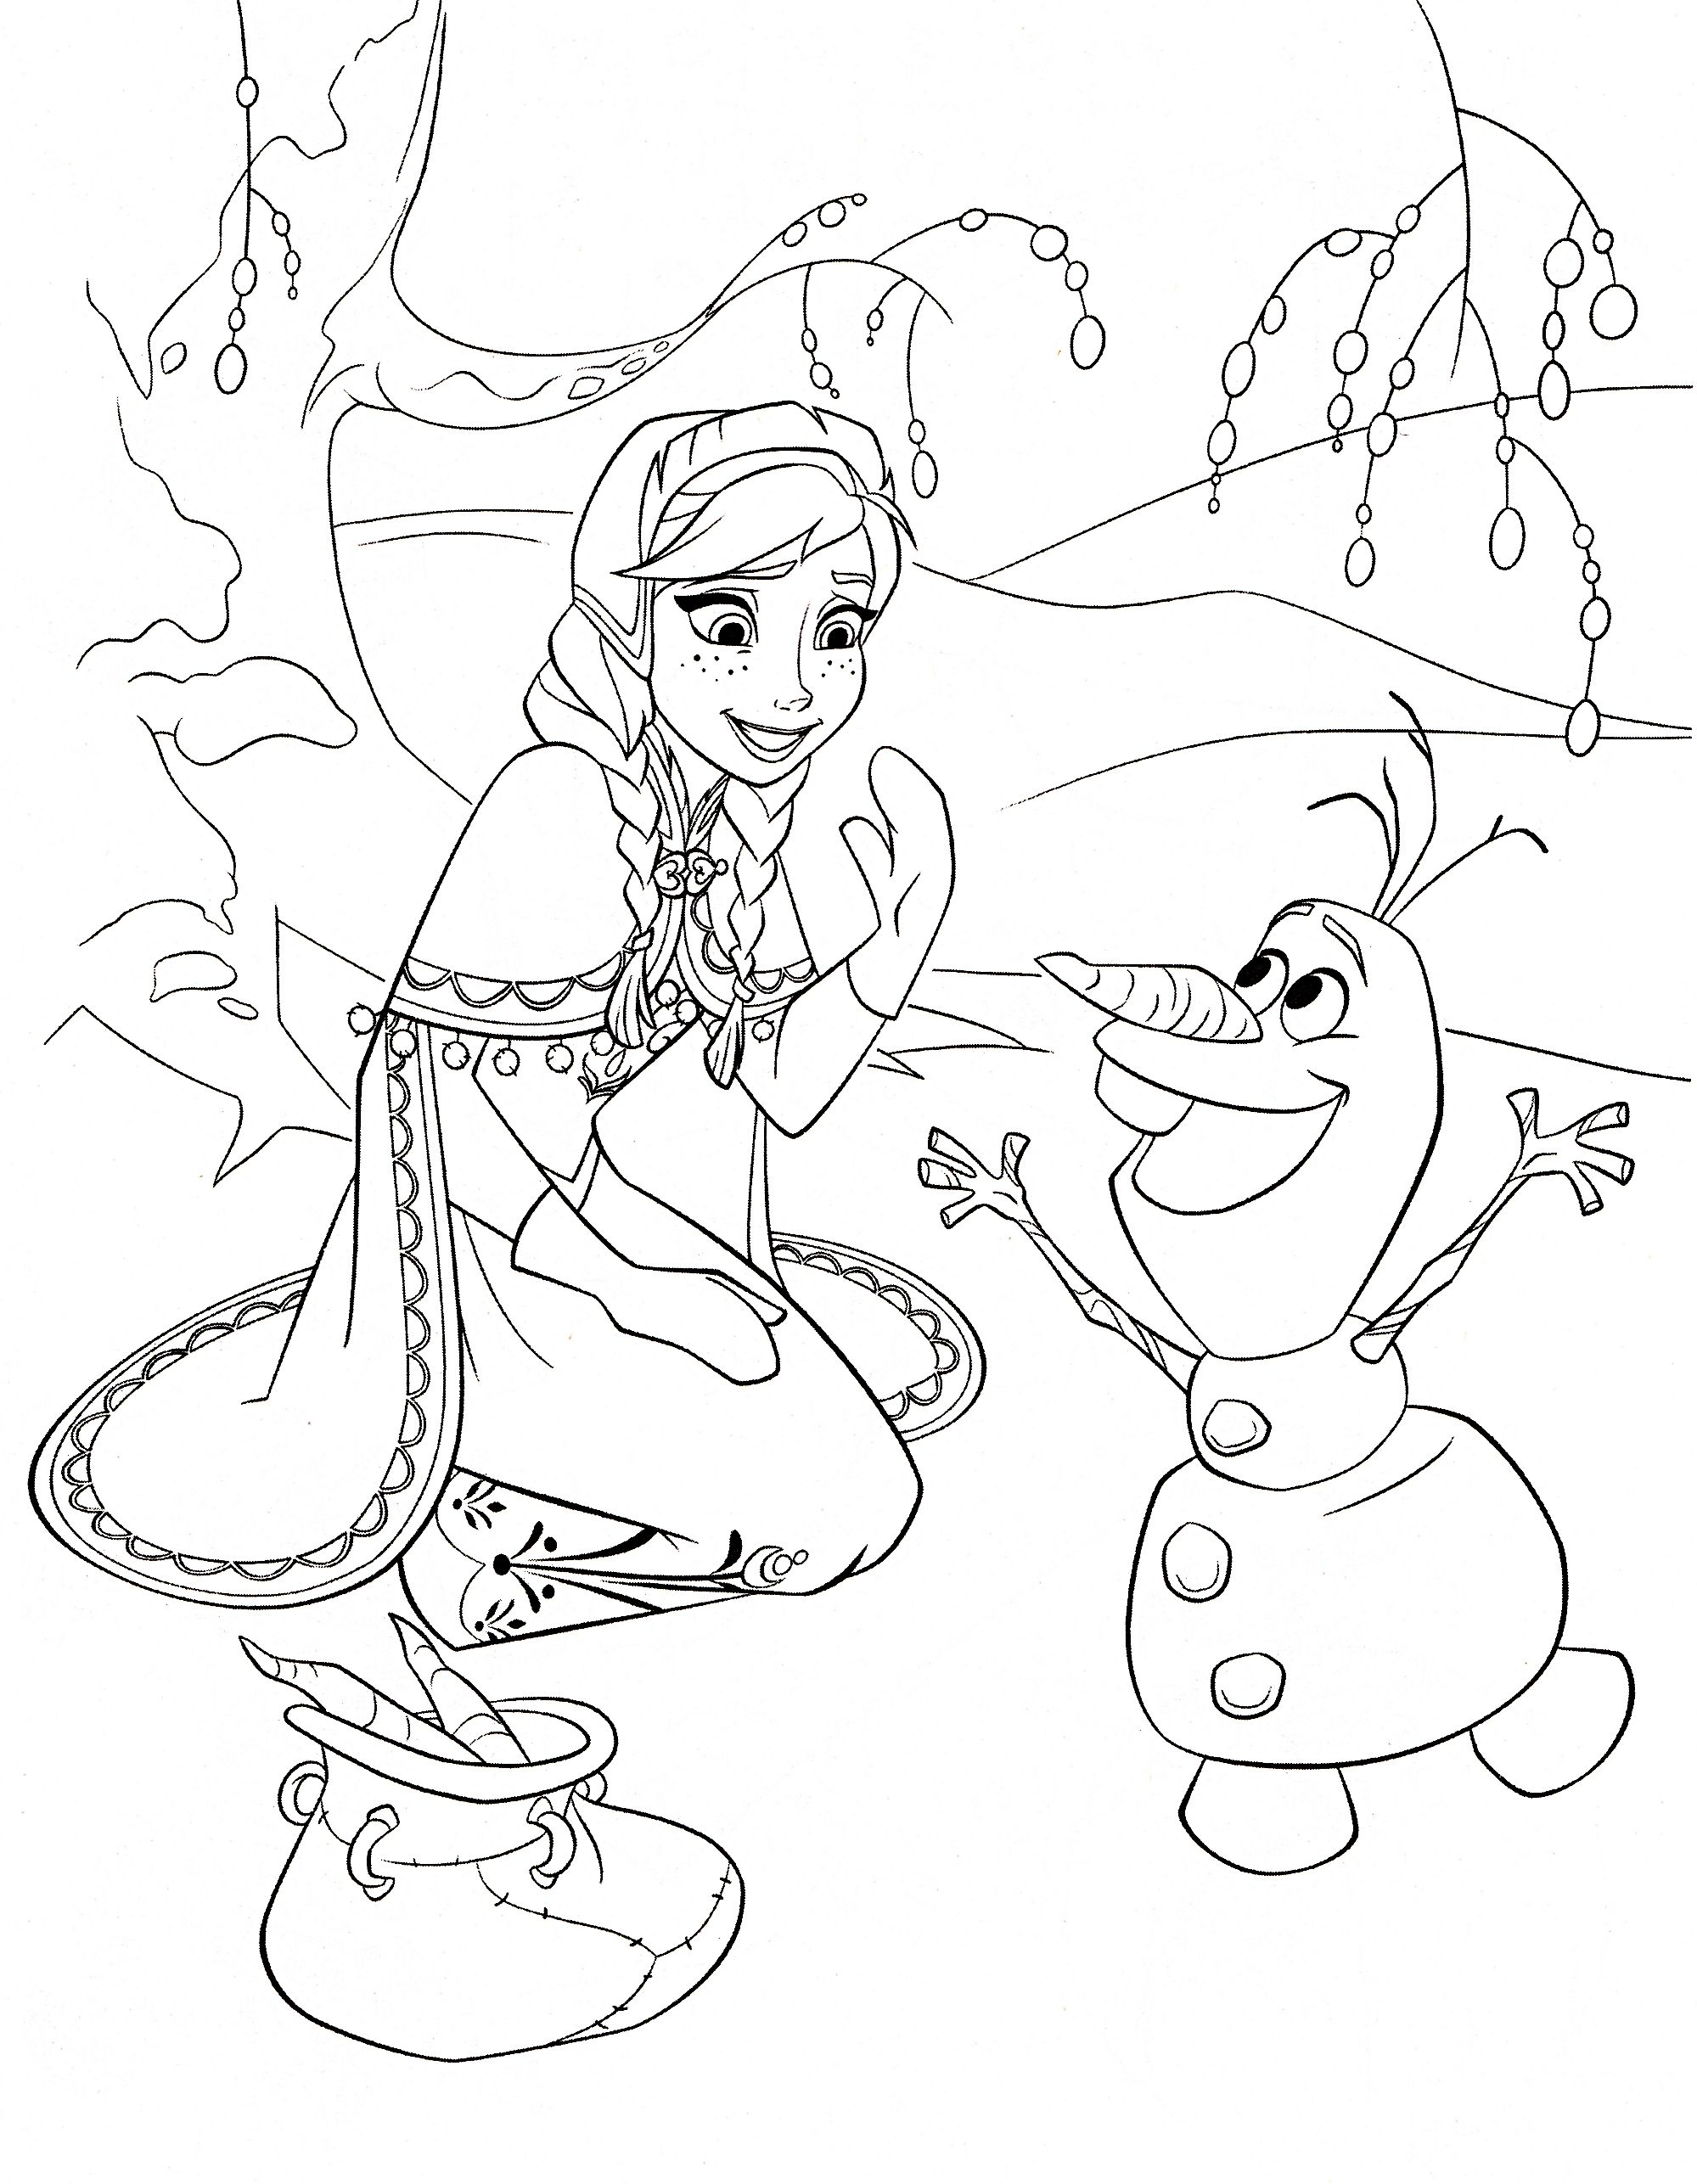 FREE Frozen Printable Coloring Activity Pages Plus Computer Games Disney Princess